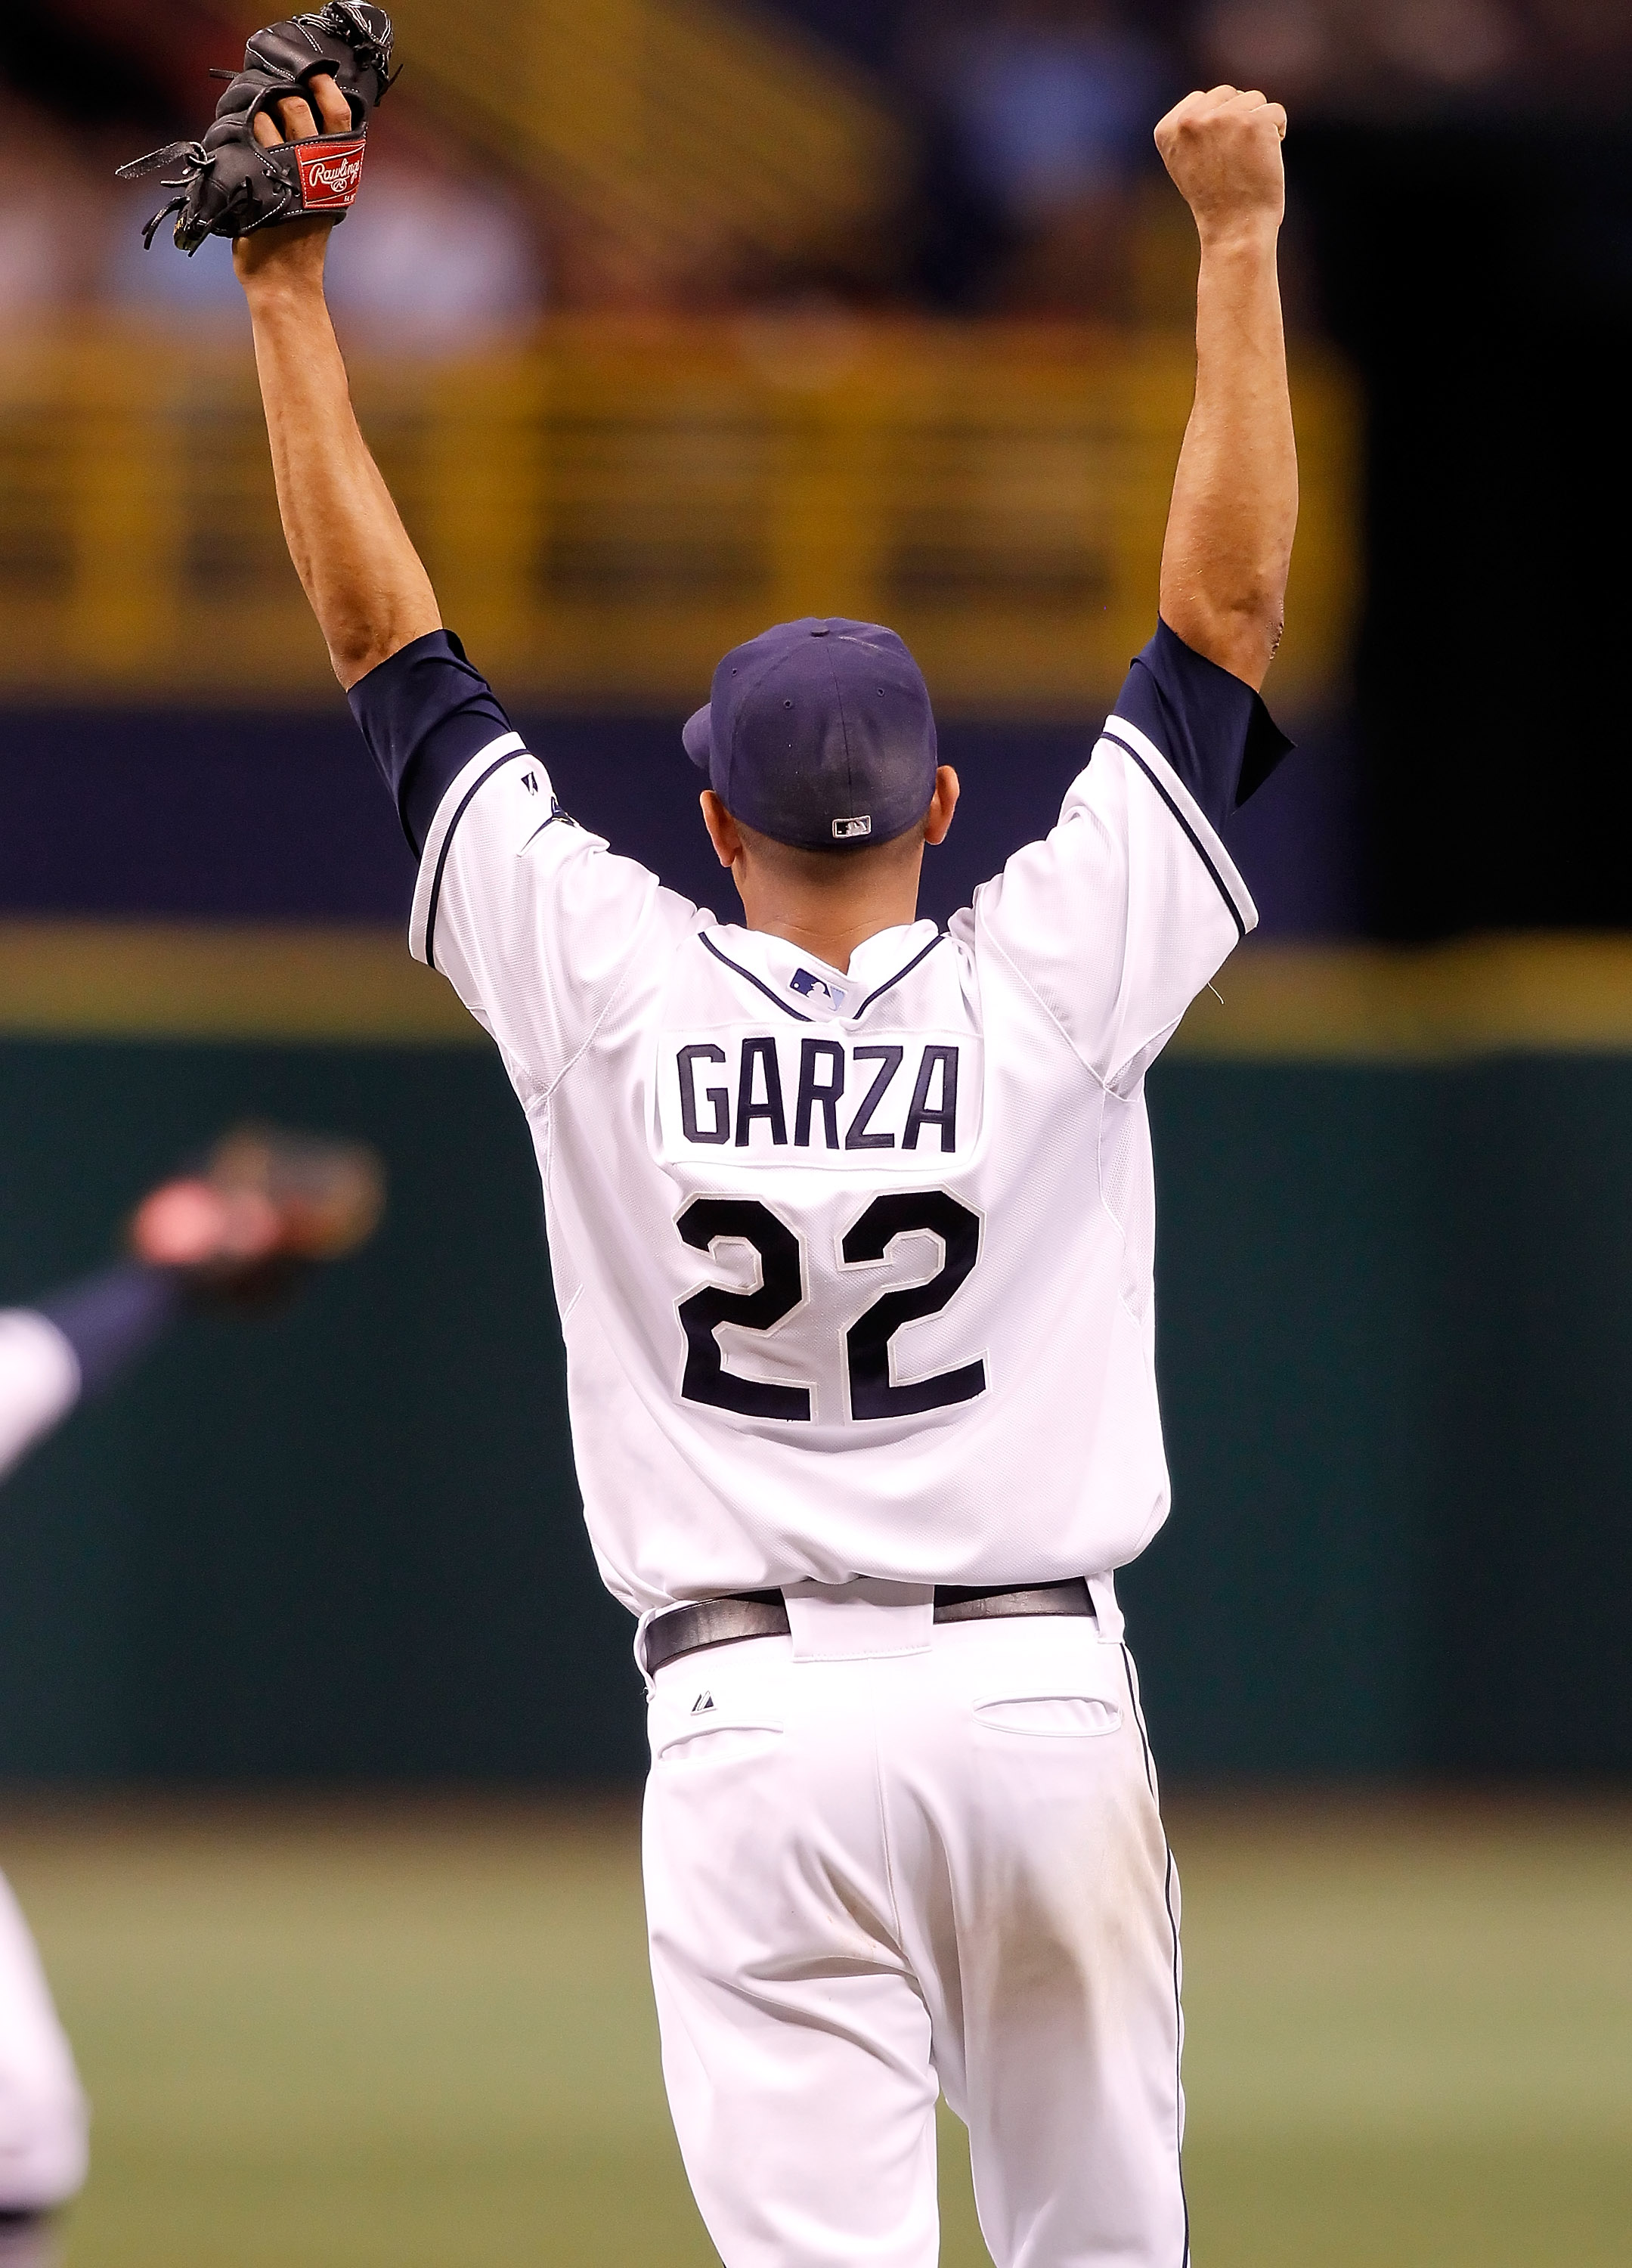 ST PETERSBURG, FL - JULY 26:  Pitcher Matt Garza #22 of the Tampa Bay Rays celebrates his no hitter against the Detroit Tigers during the game at Tropicana Field on July 26, 2010 in St. Petersburg, Florida. Tampa Bay beat Detroit 5-0.  (Photo by J. Meric/